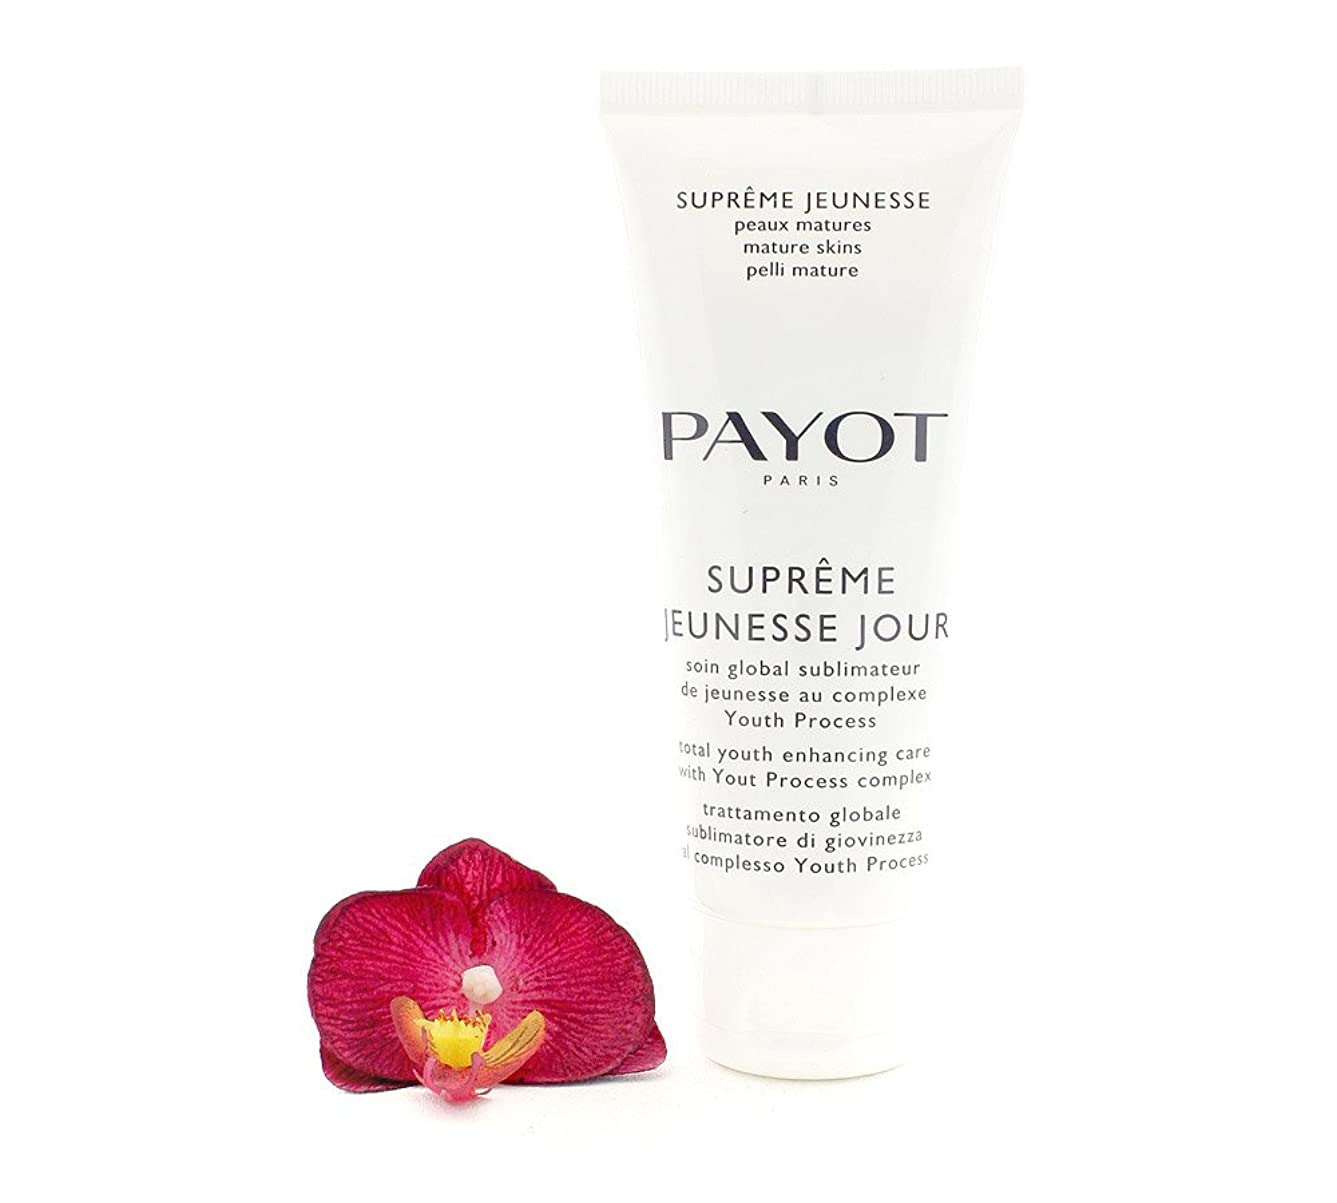 香ばしい素晴らしさ群衆PAYOT Supreme Jeunesse Jour Total Youth Enhancing Care Cream 100 ml / 3.3 Fl.oz. - SALON SIZE